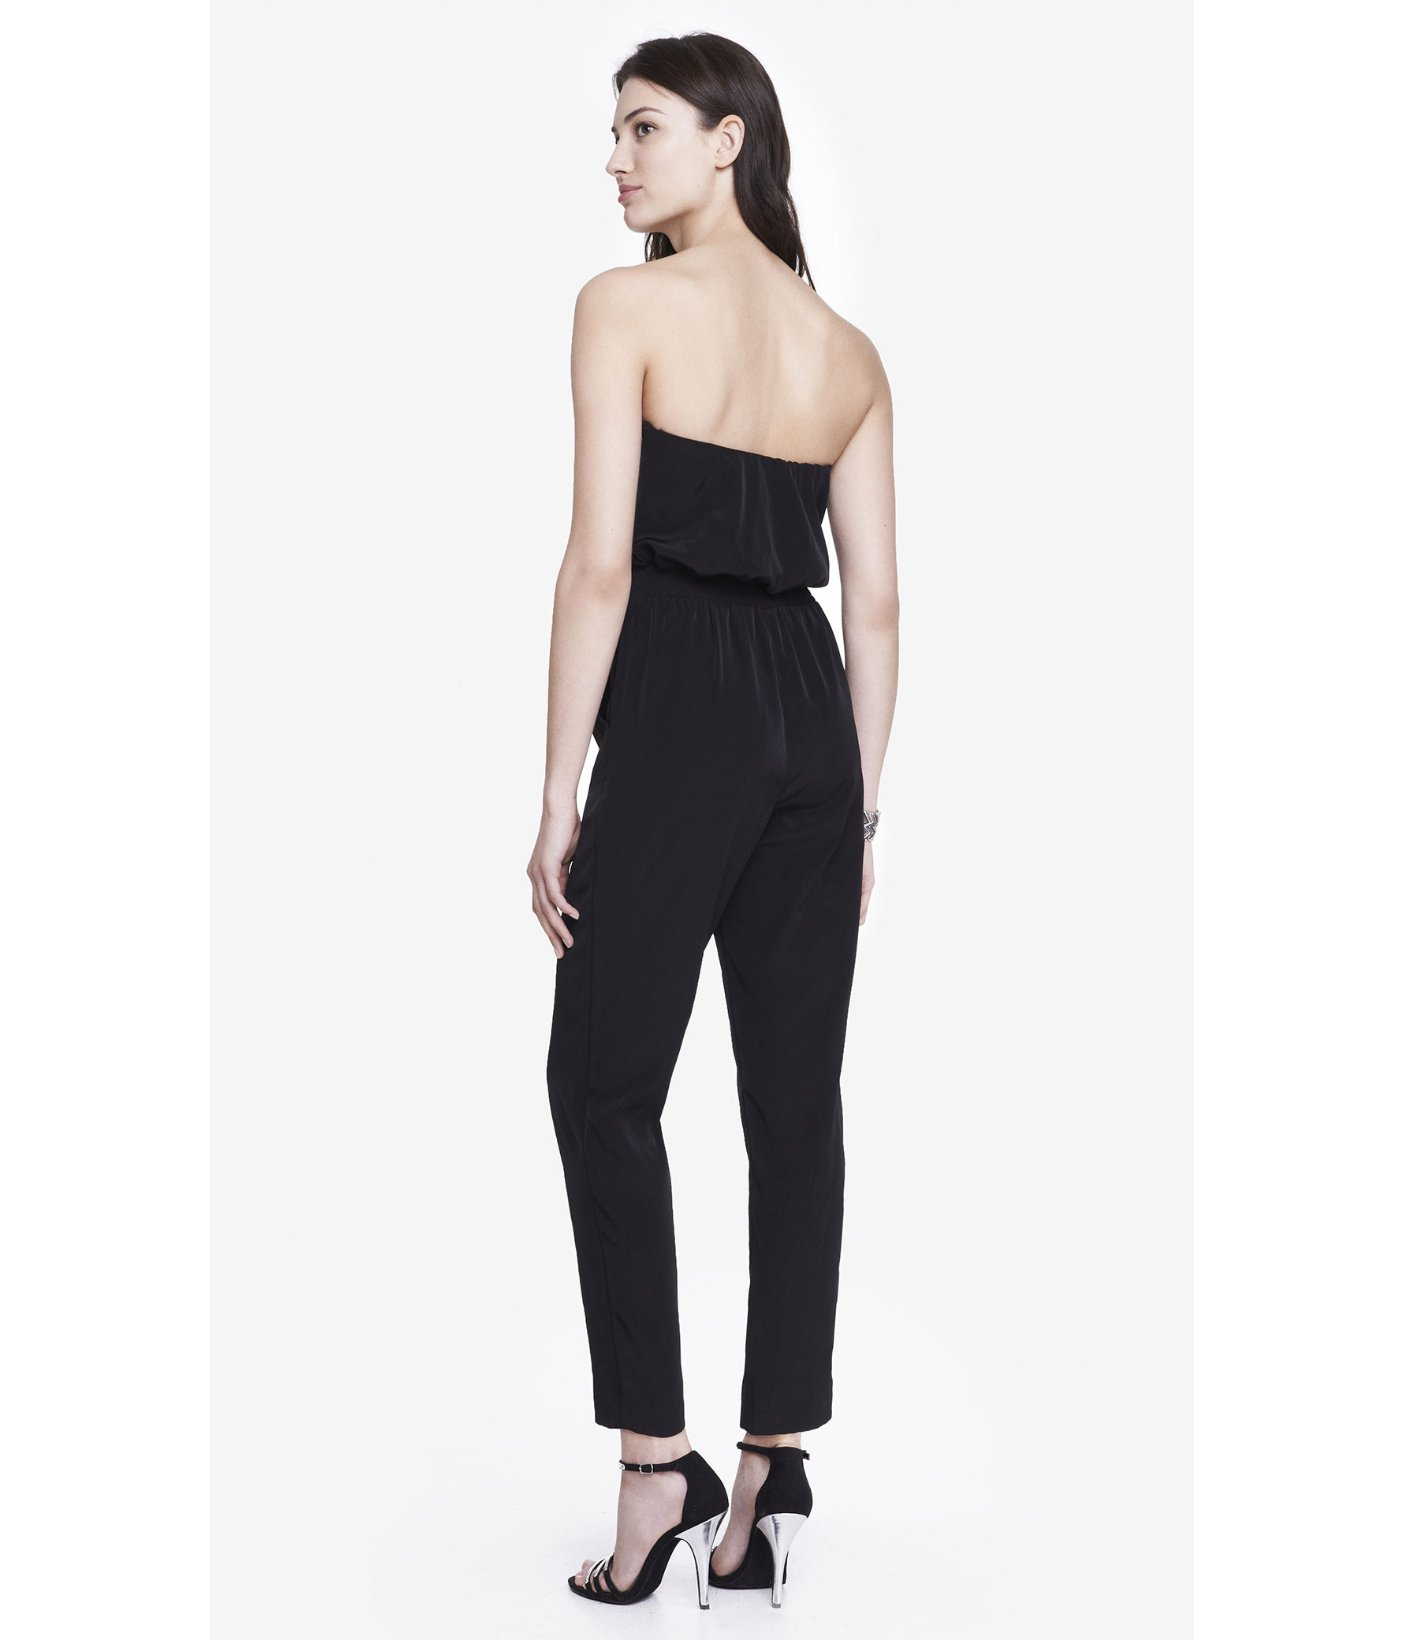 bd5120e65b92 Lyst - Express Strapless Sweetheart Neck Jumpsuit in Black